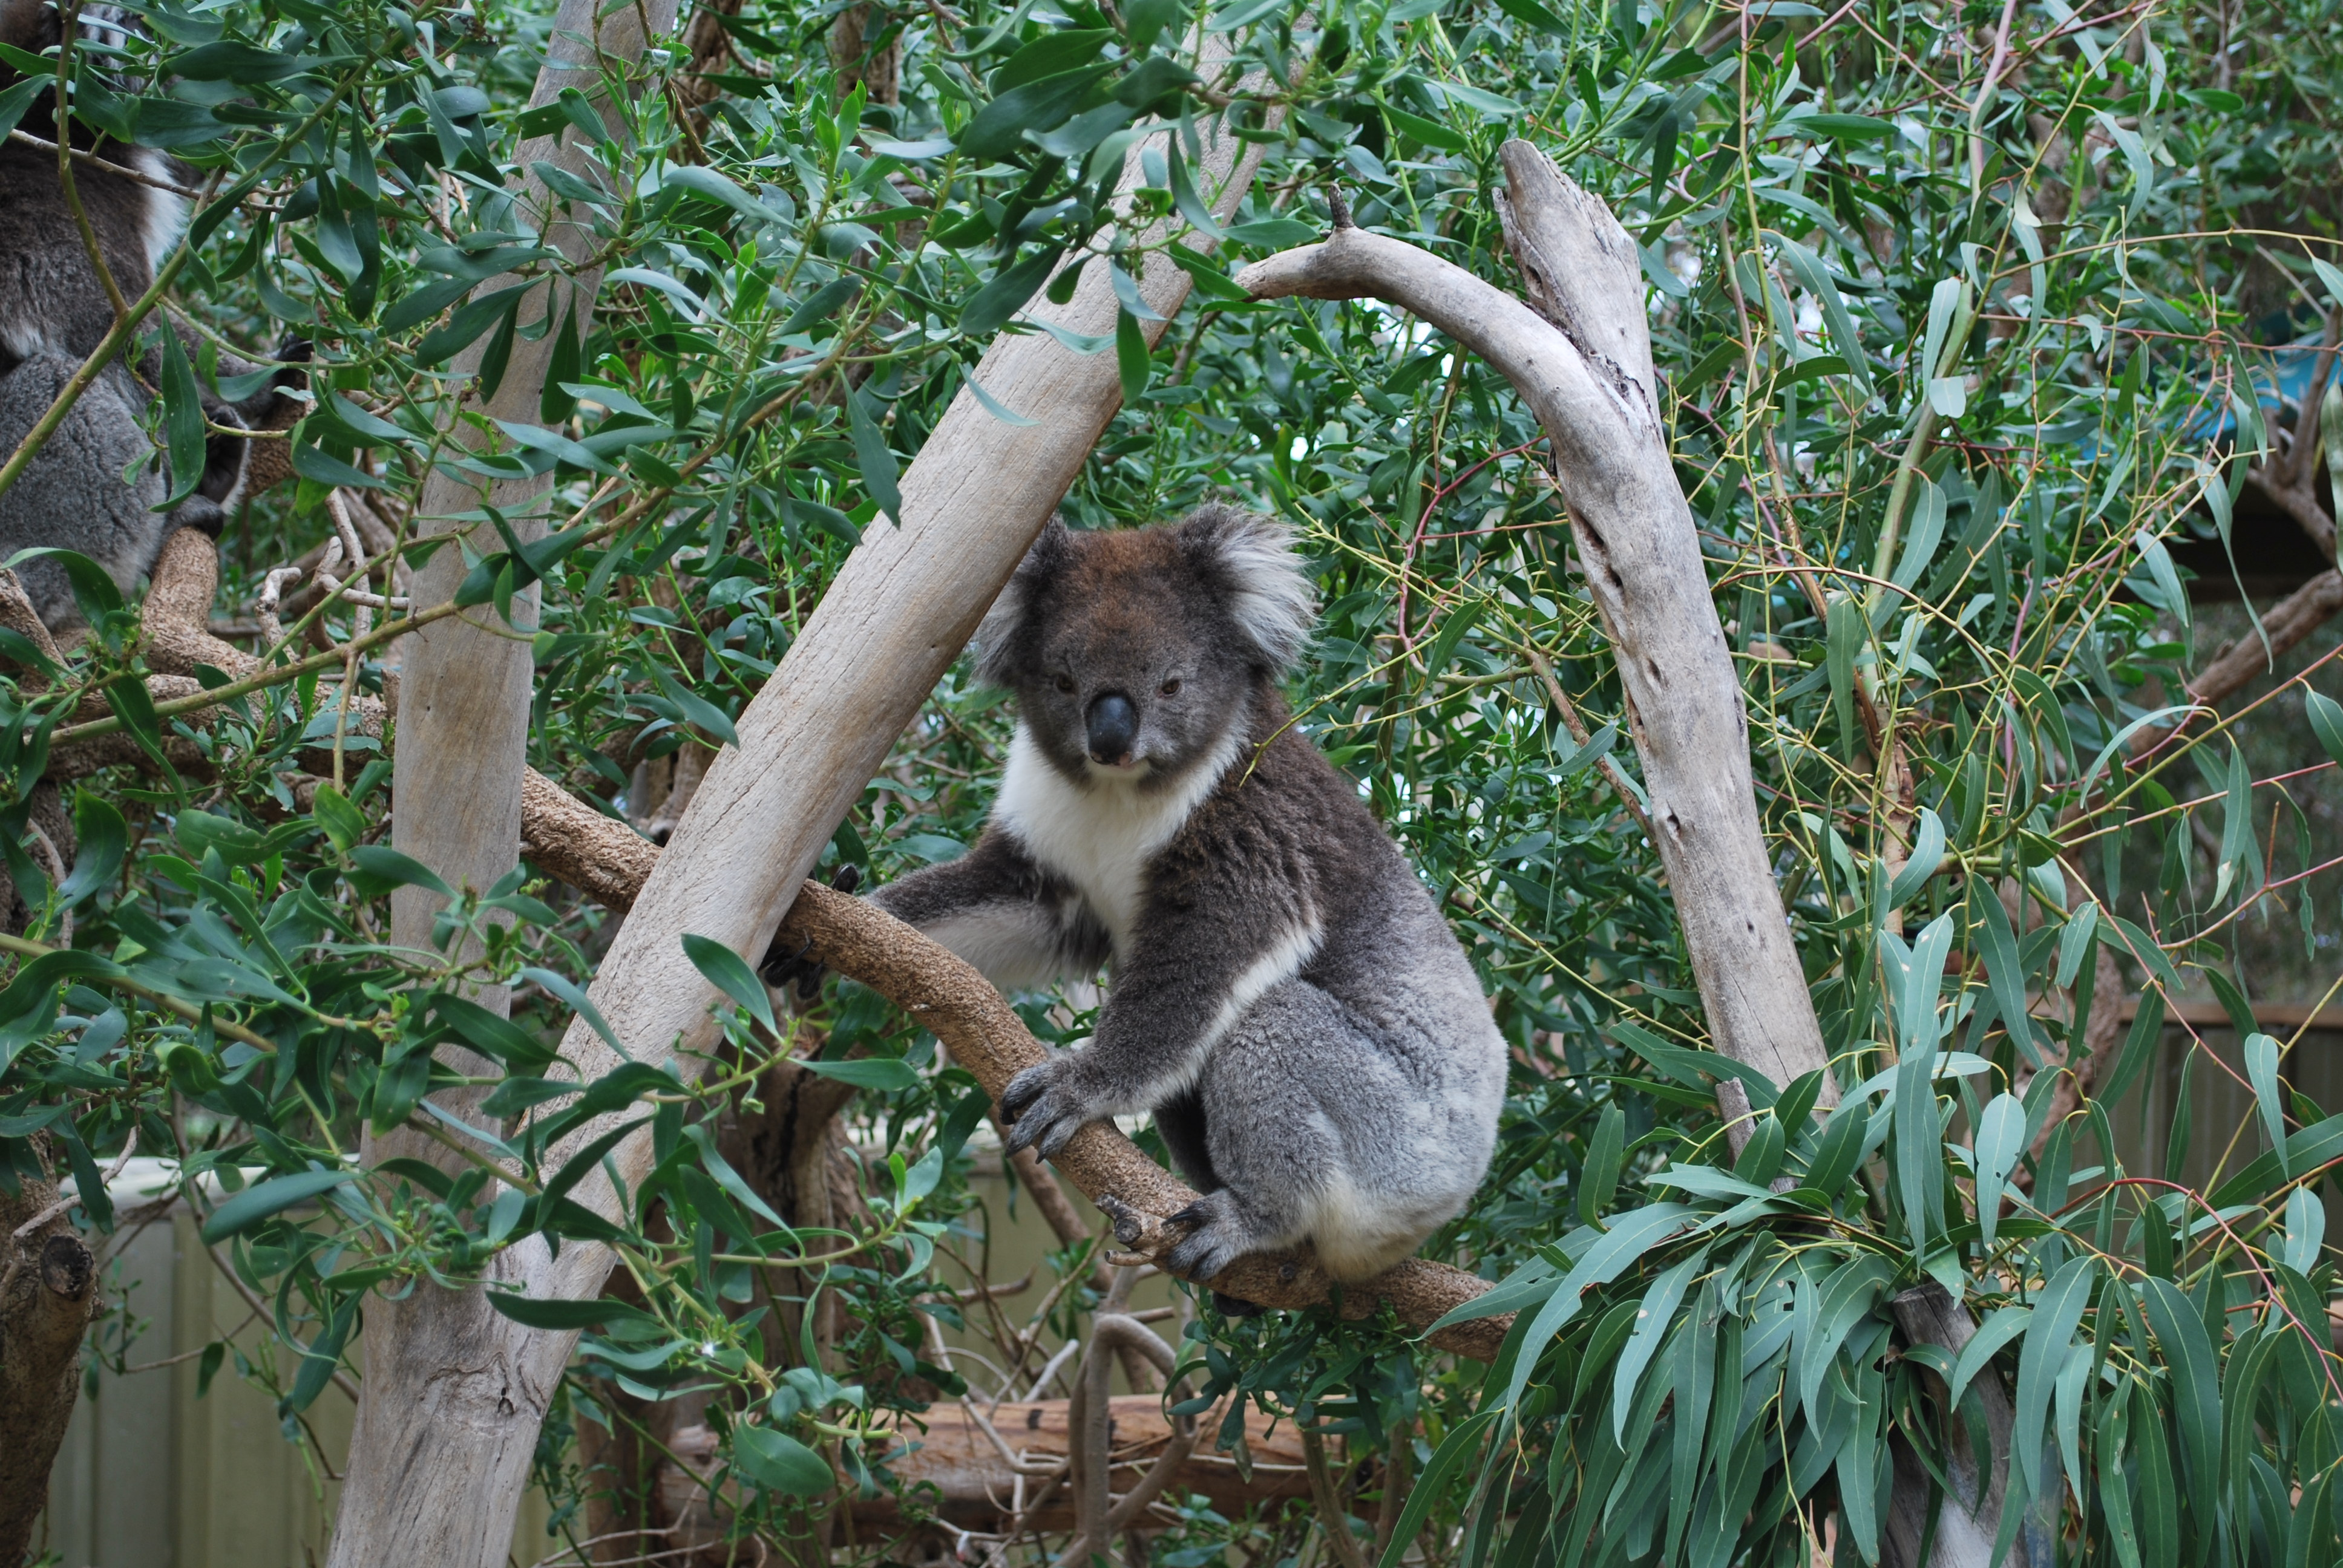 koala bear pictures download free images on unsplash bear claw graphics for jeep jk door bear claw graphic